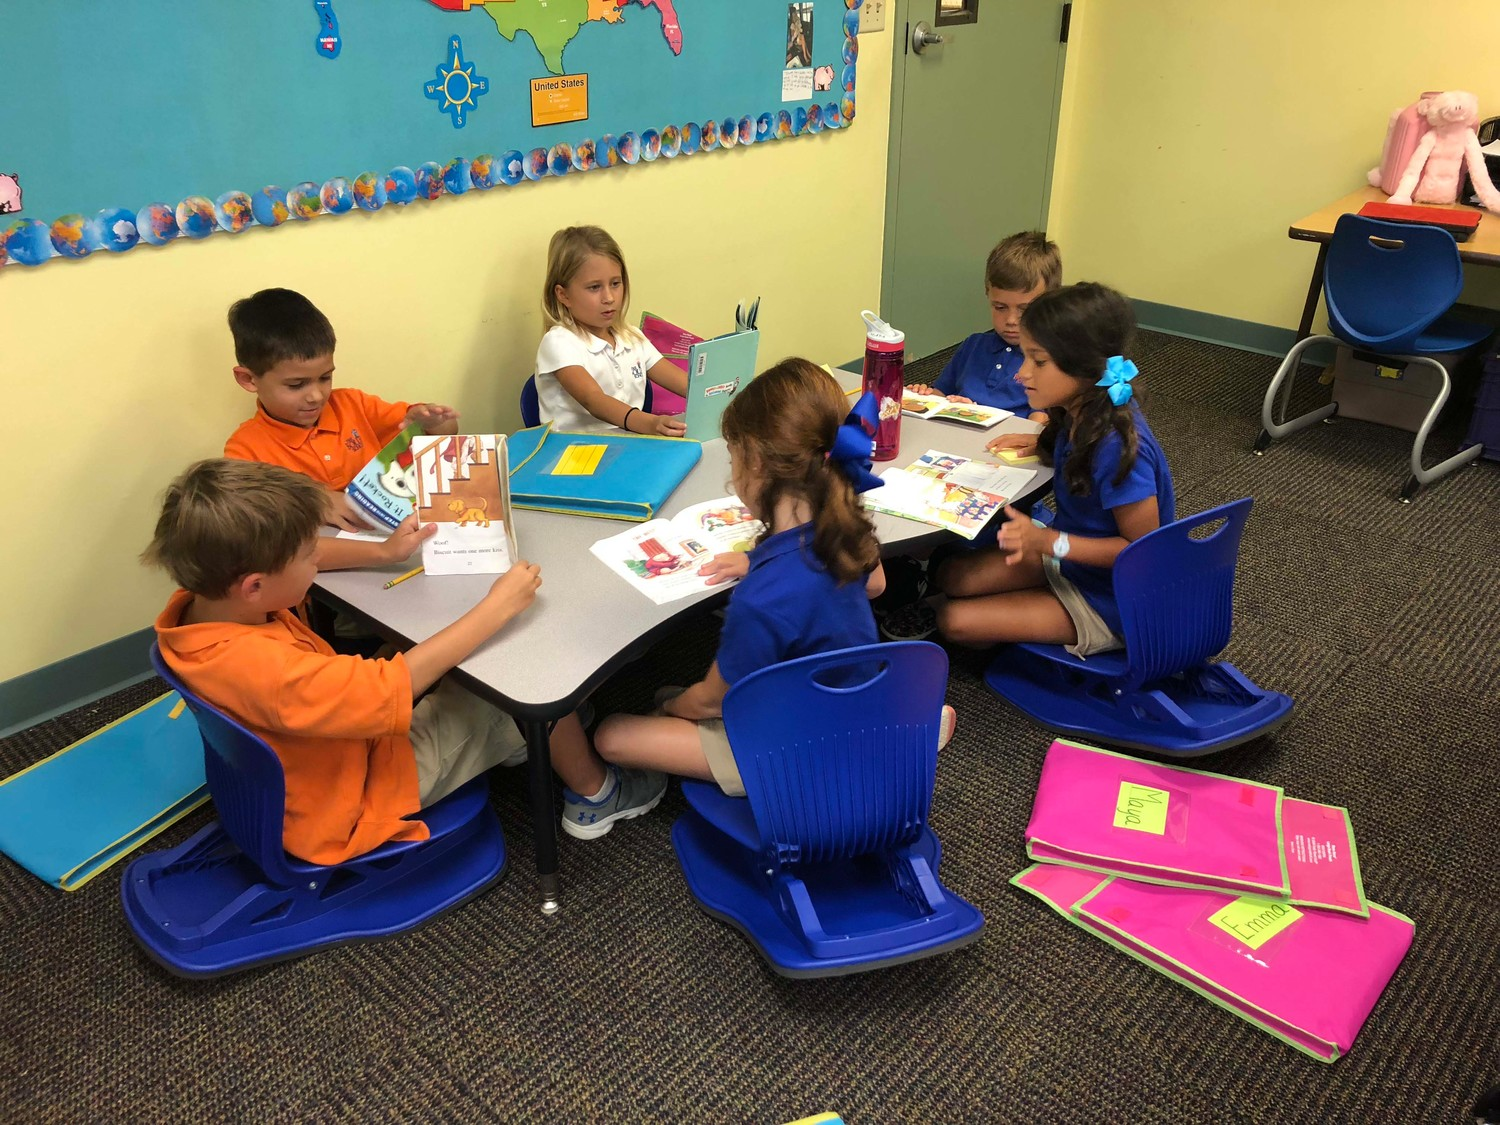 Bolles Pvb Students Up And Moving Thanks To New Seating